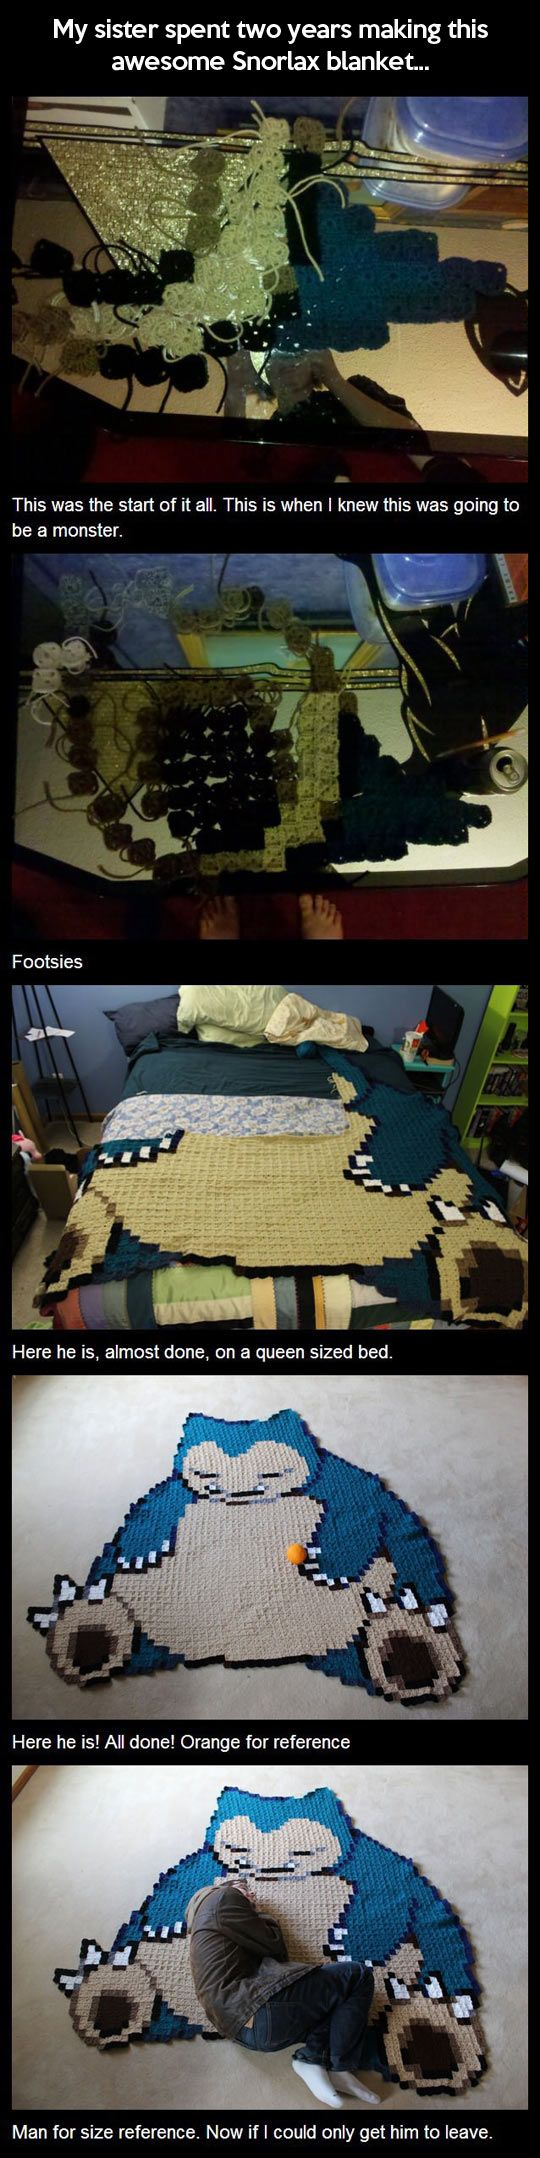 Awesome idea!! Looks like they made a bunch of squares to make a pixilated blanket. I WILL TRY THIS!!